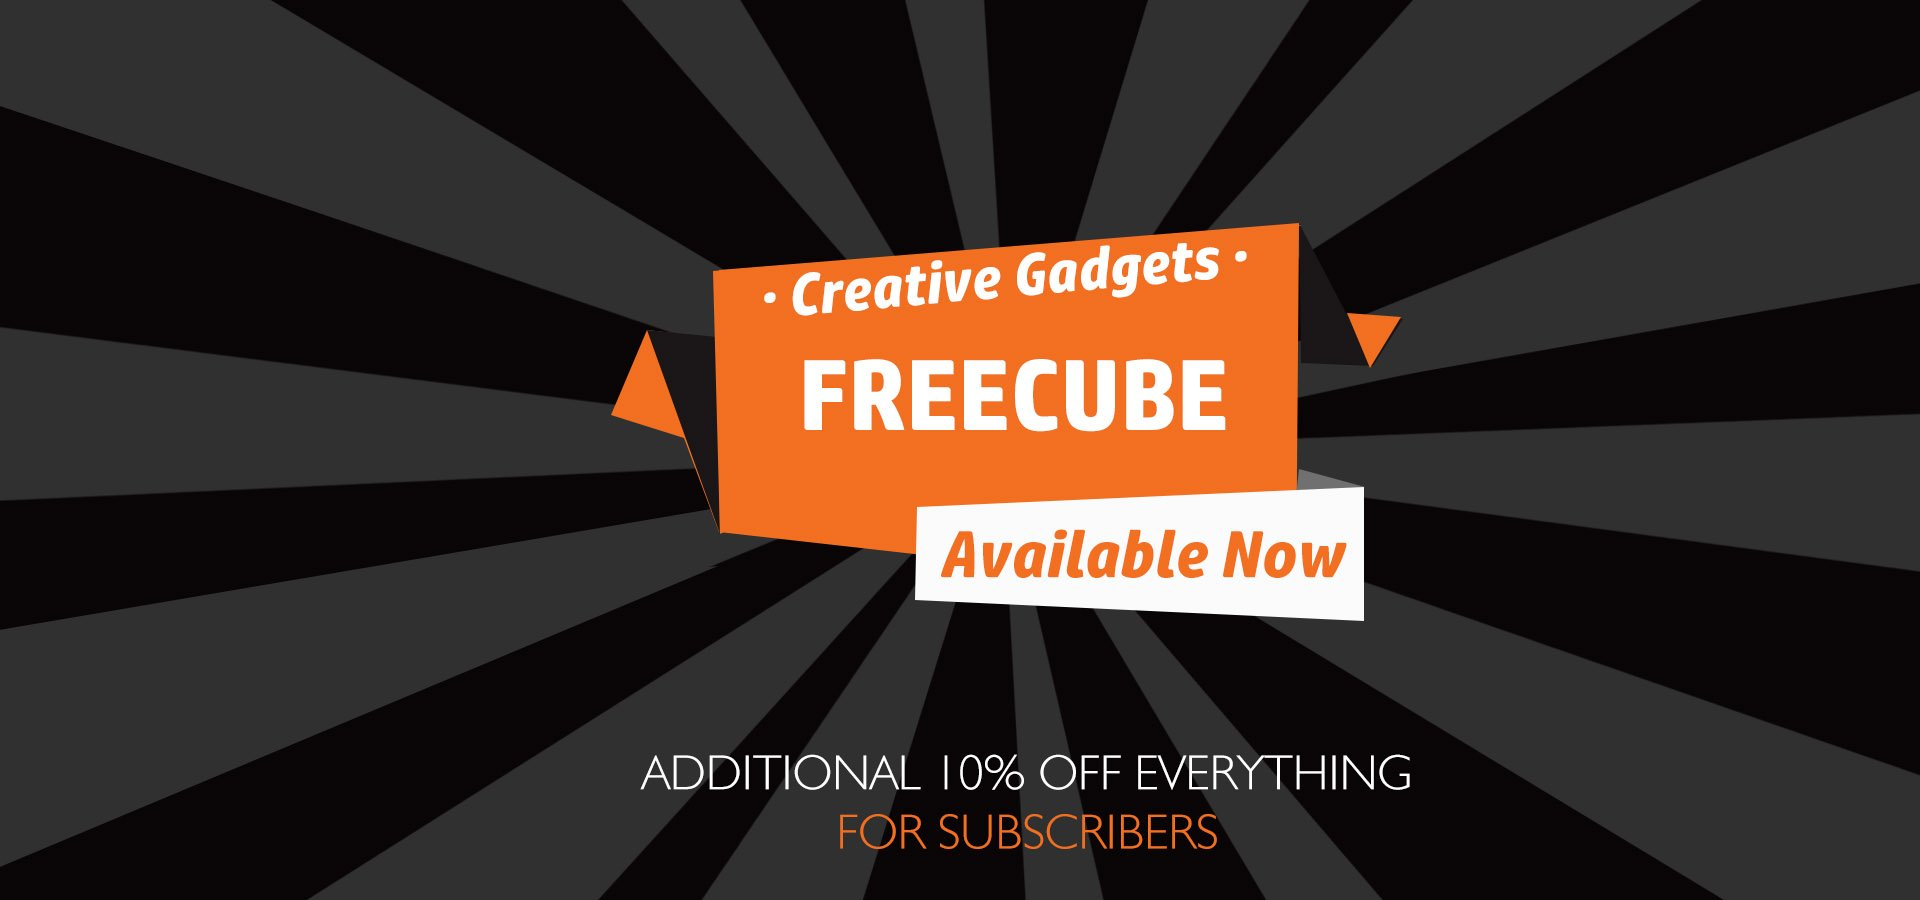 Freecube: Modular USB Power Socket, Bluetooth Speaker, Wireless Charger & Sensor Light In One